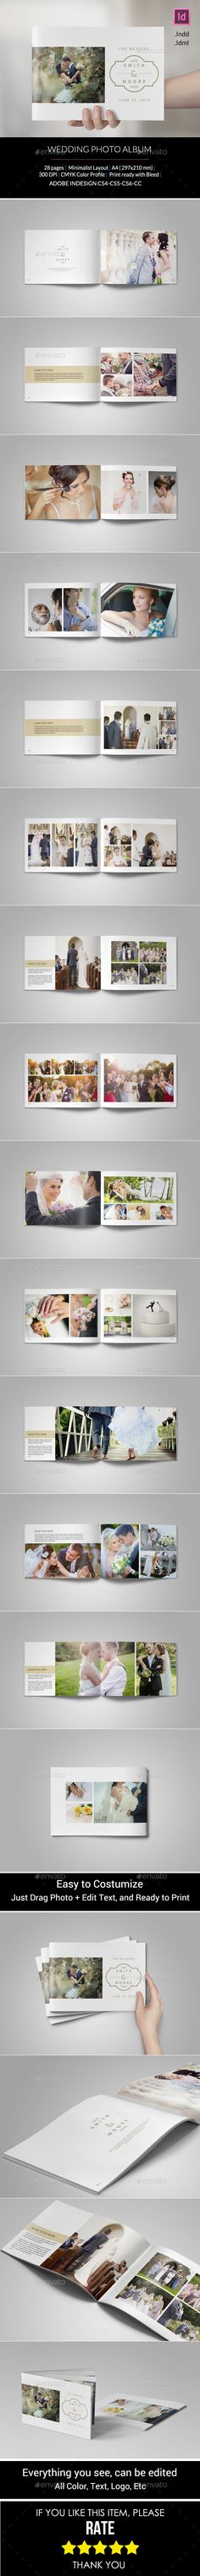 Simple Wedding Photo Al Indesign Indd Book Available Here